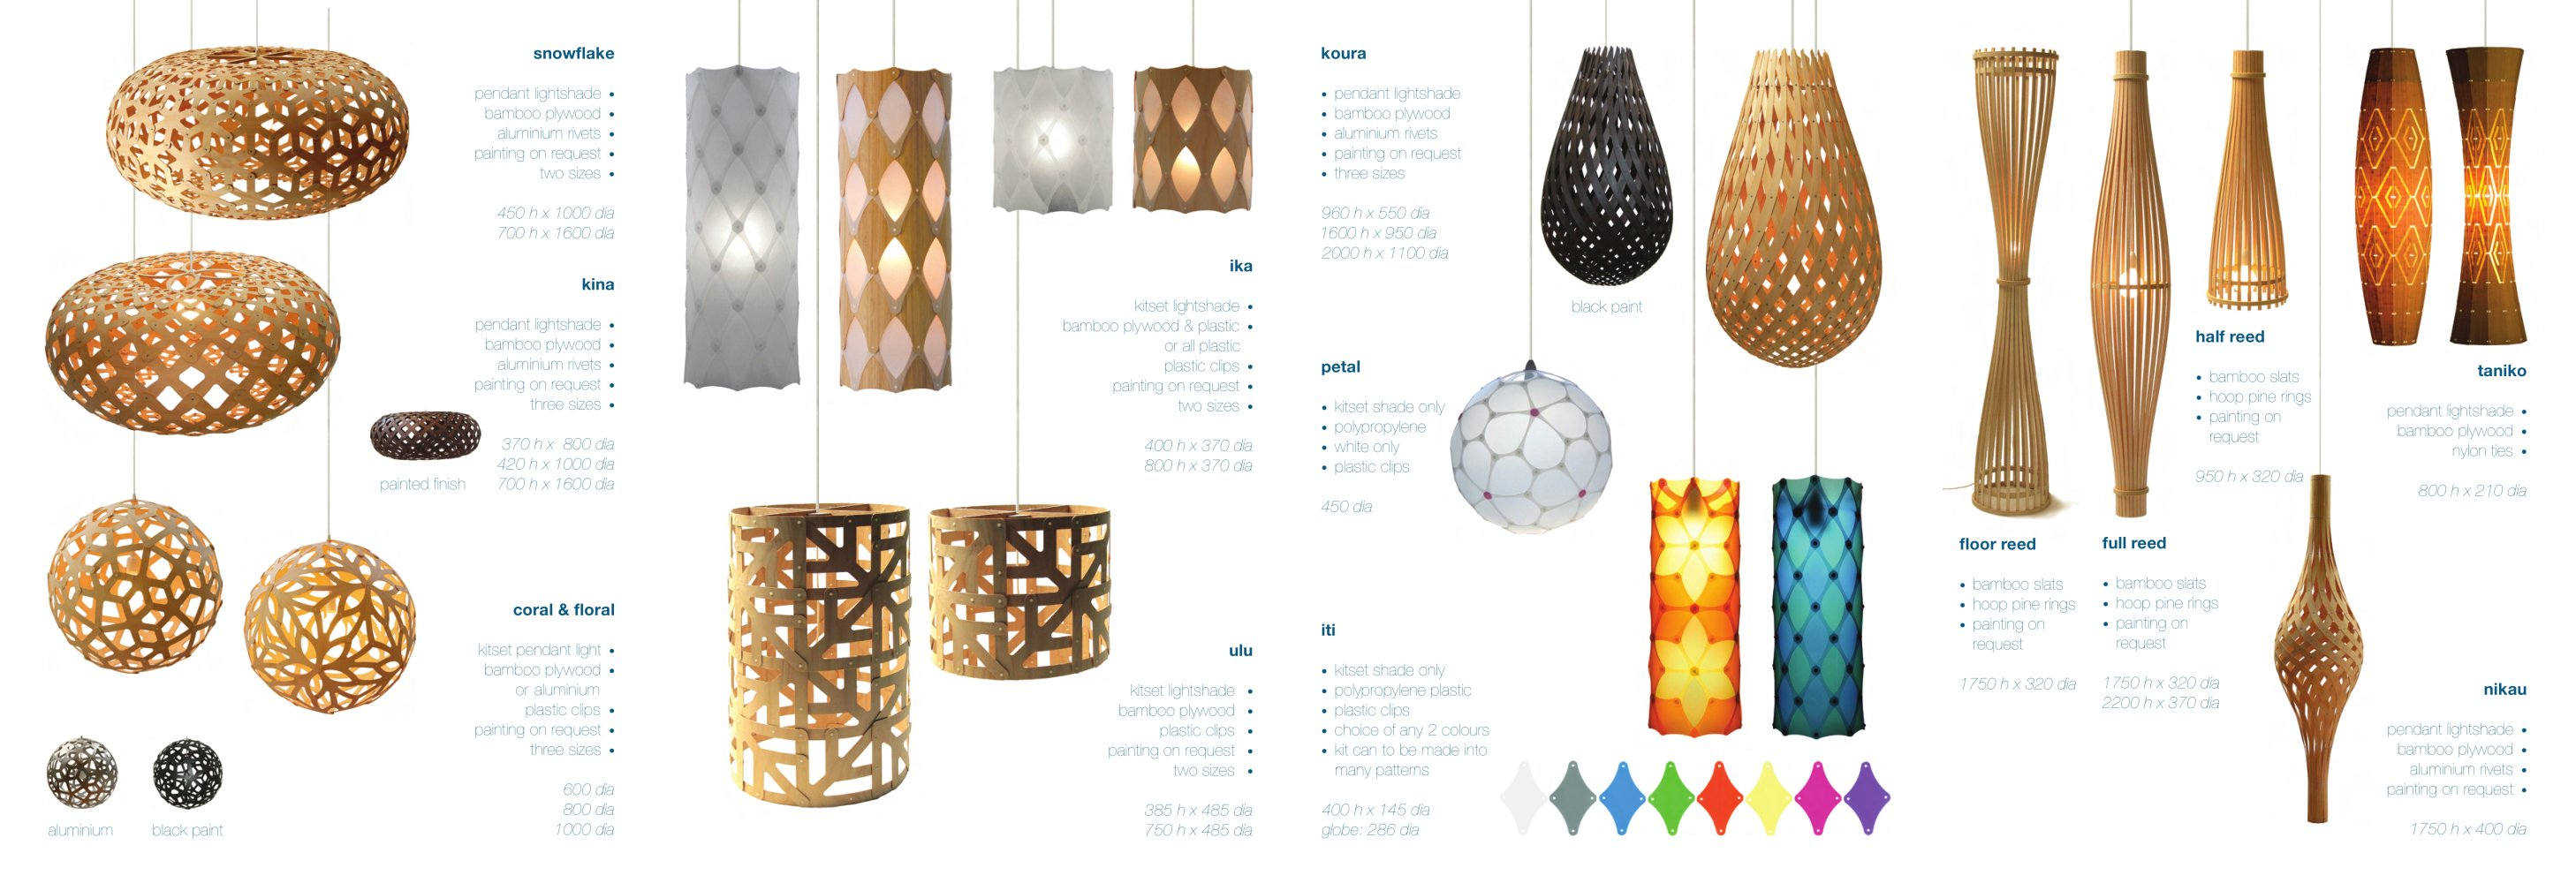 Lighting Brochure   1 / 2 Pages